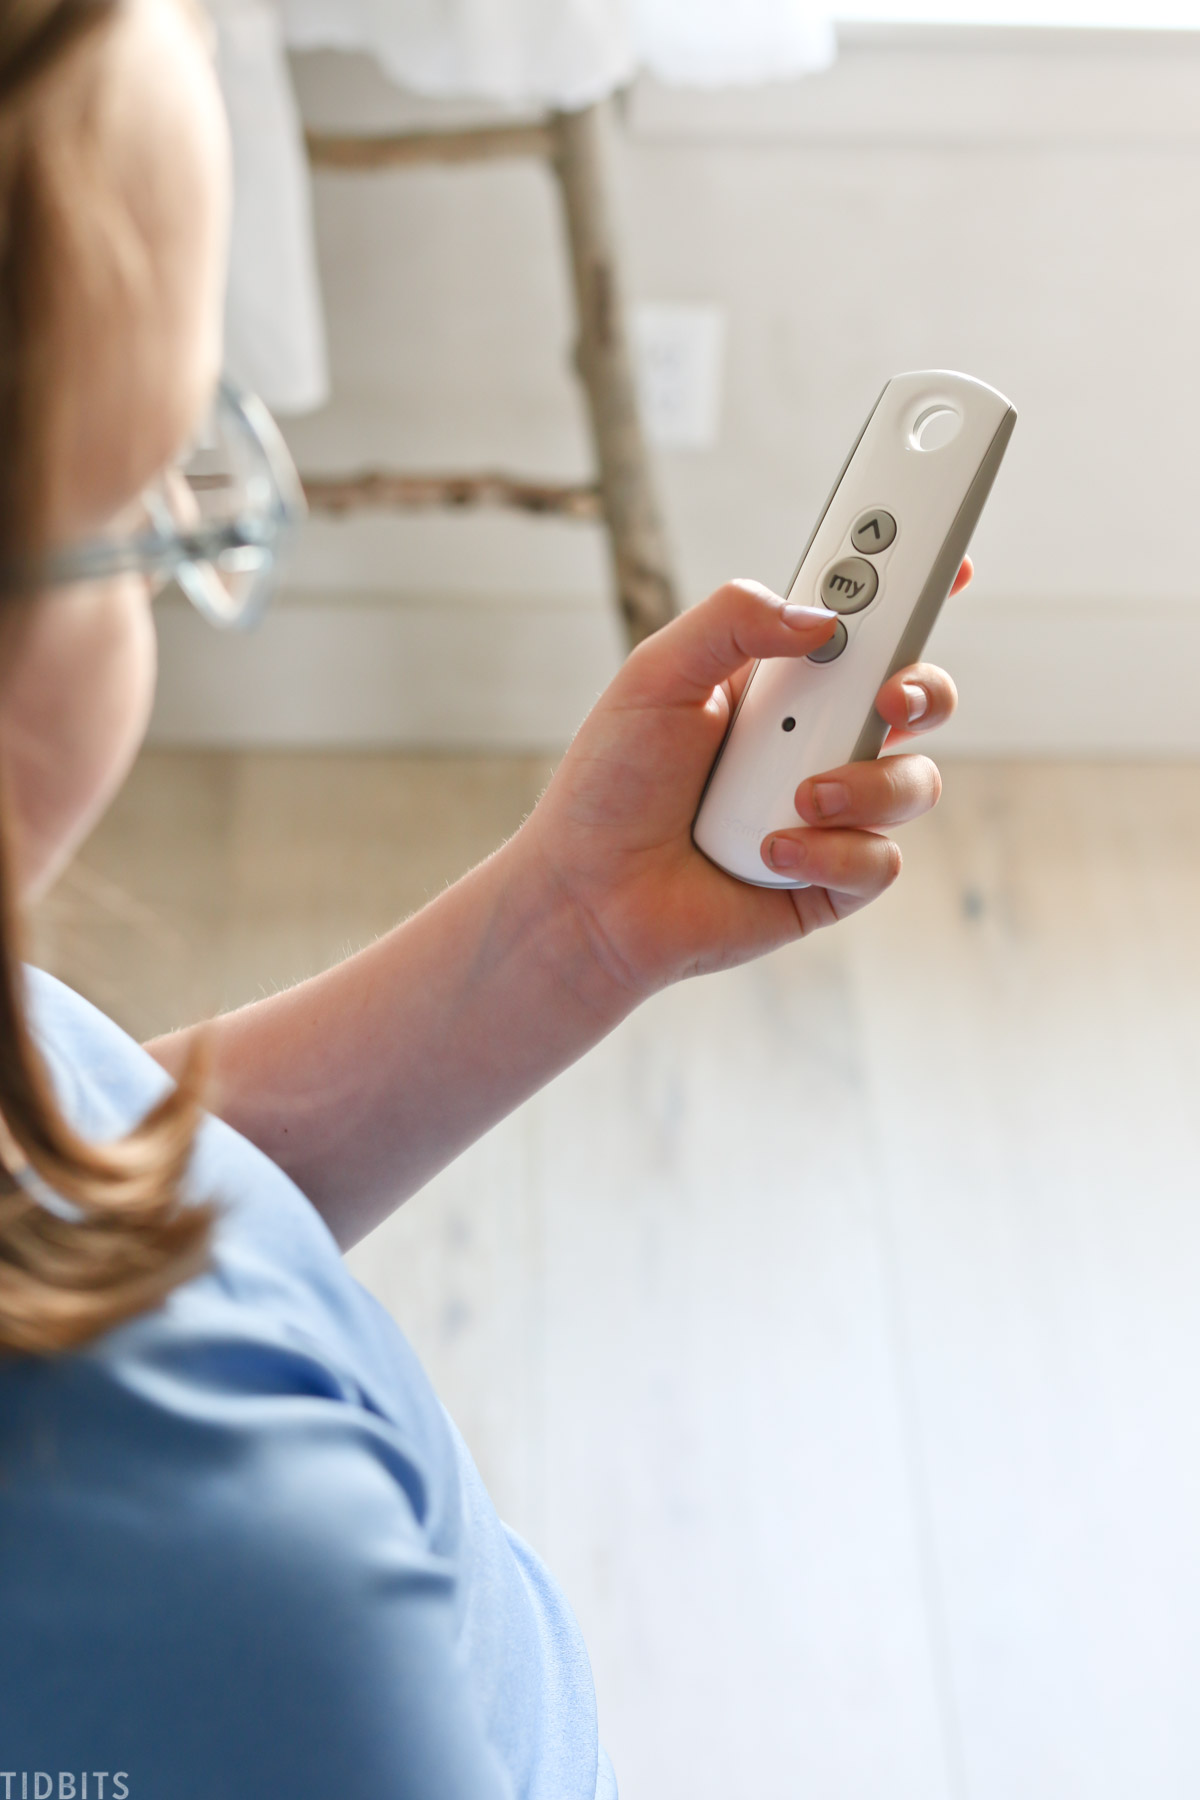 child holding remote control that operates a window treatment